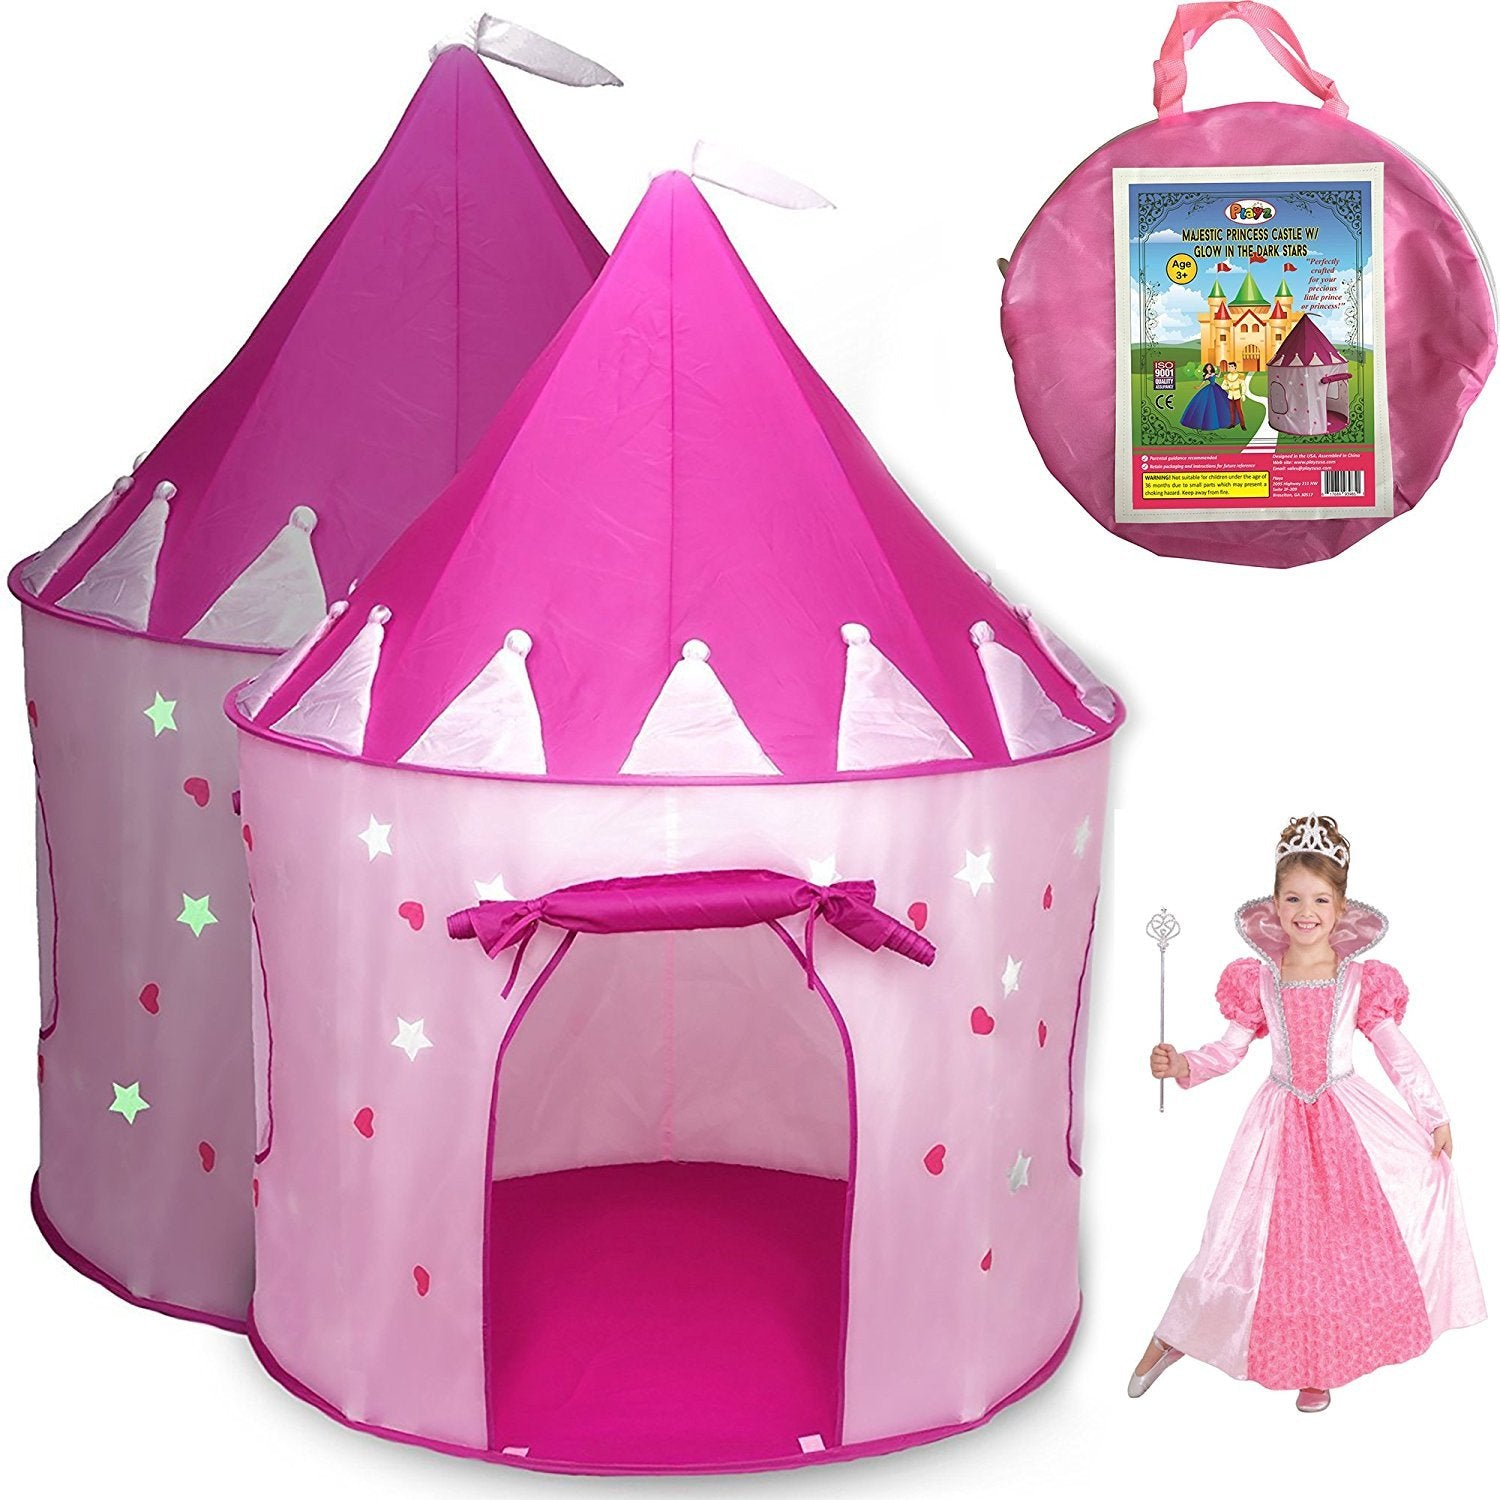 sc 1 st  GoGetGlam.com & Pink Princess Pack n Play Playhouse with Glow Stars